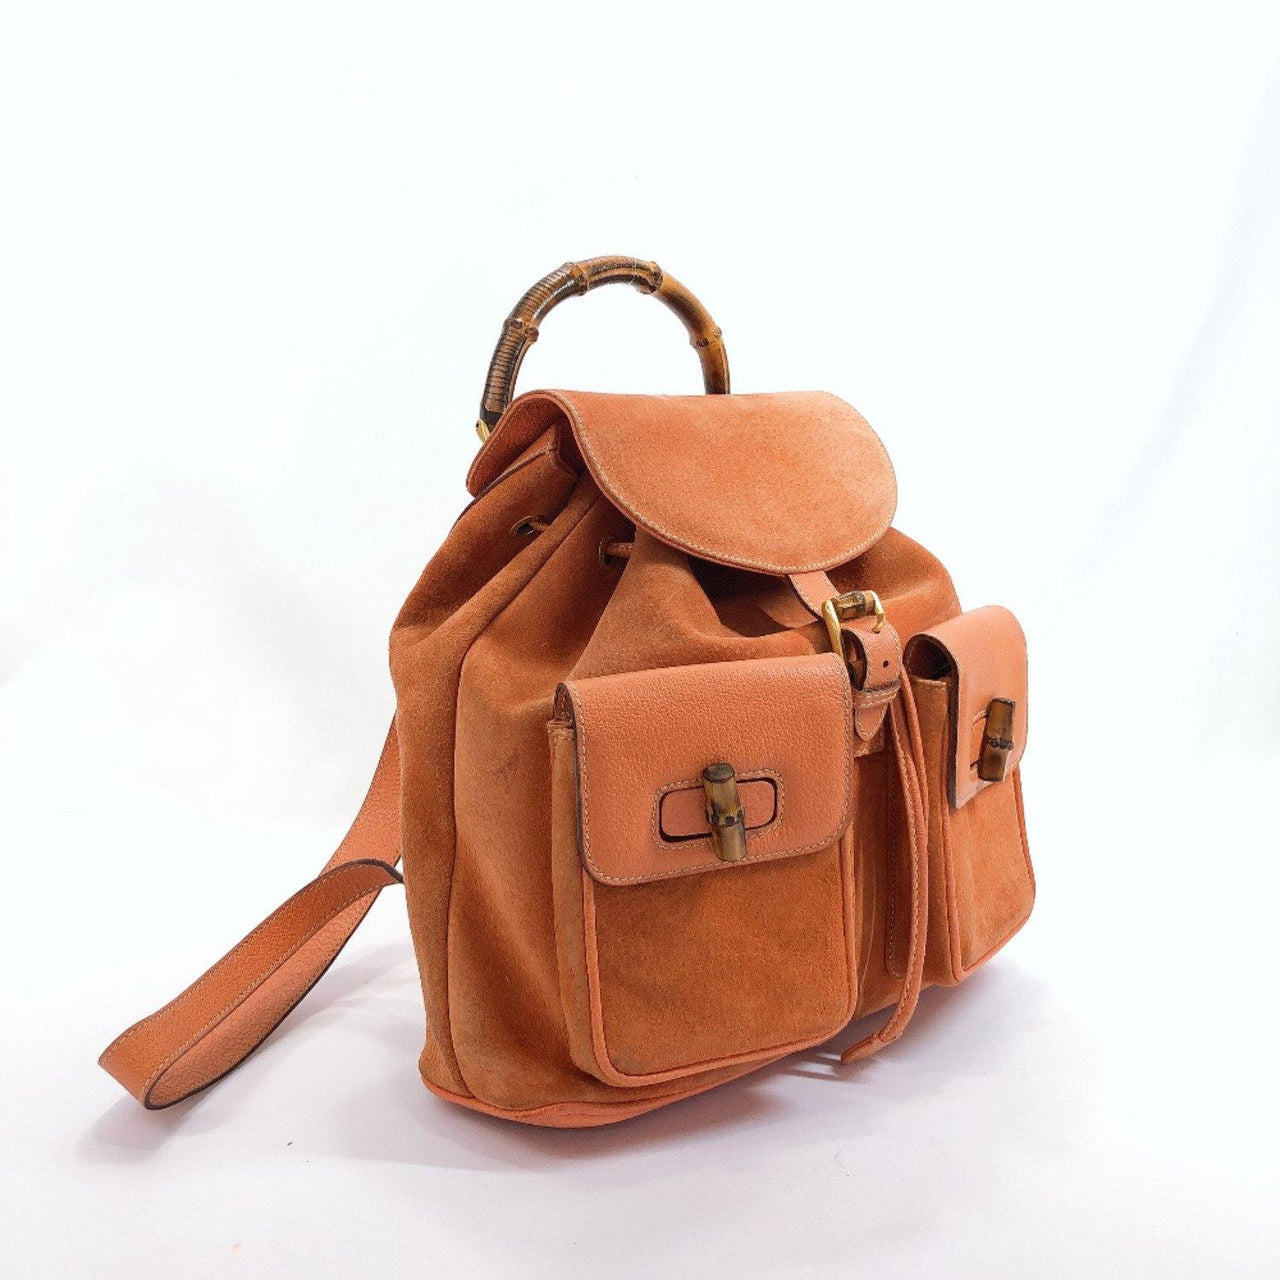 GUCCI Backpack Daypack 003.2058.0016 Bamboo Suede/leather Orange Women Used - JP-BRANDS.com